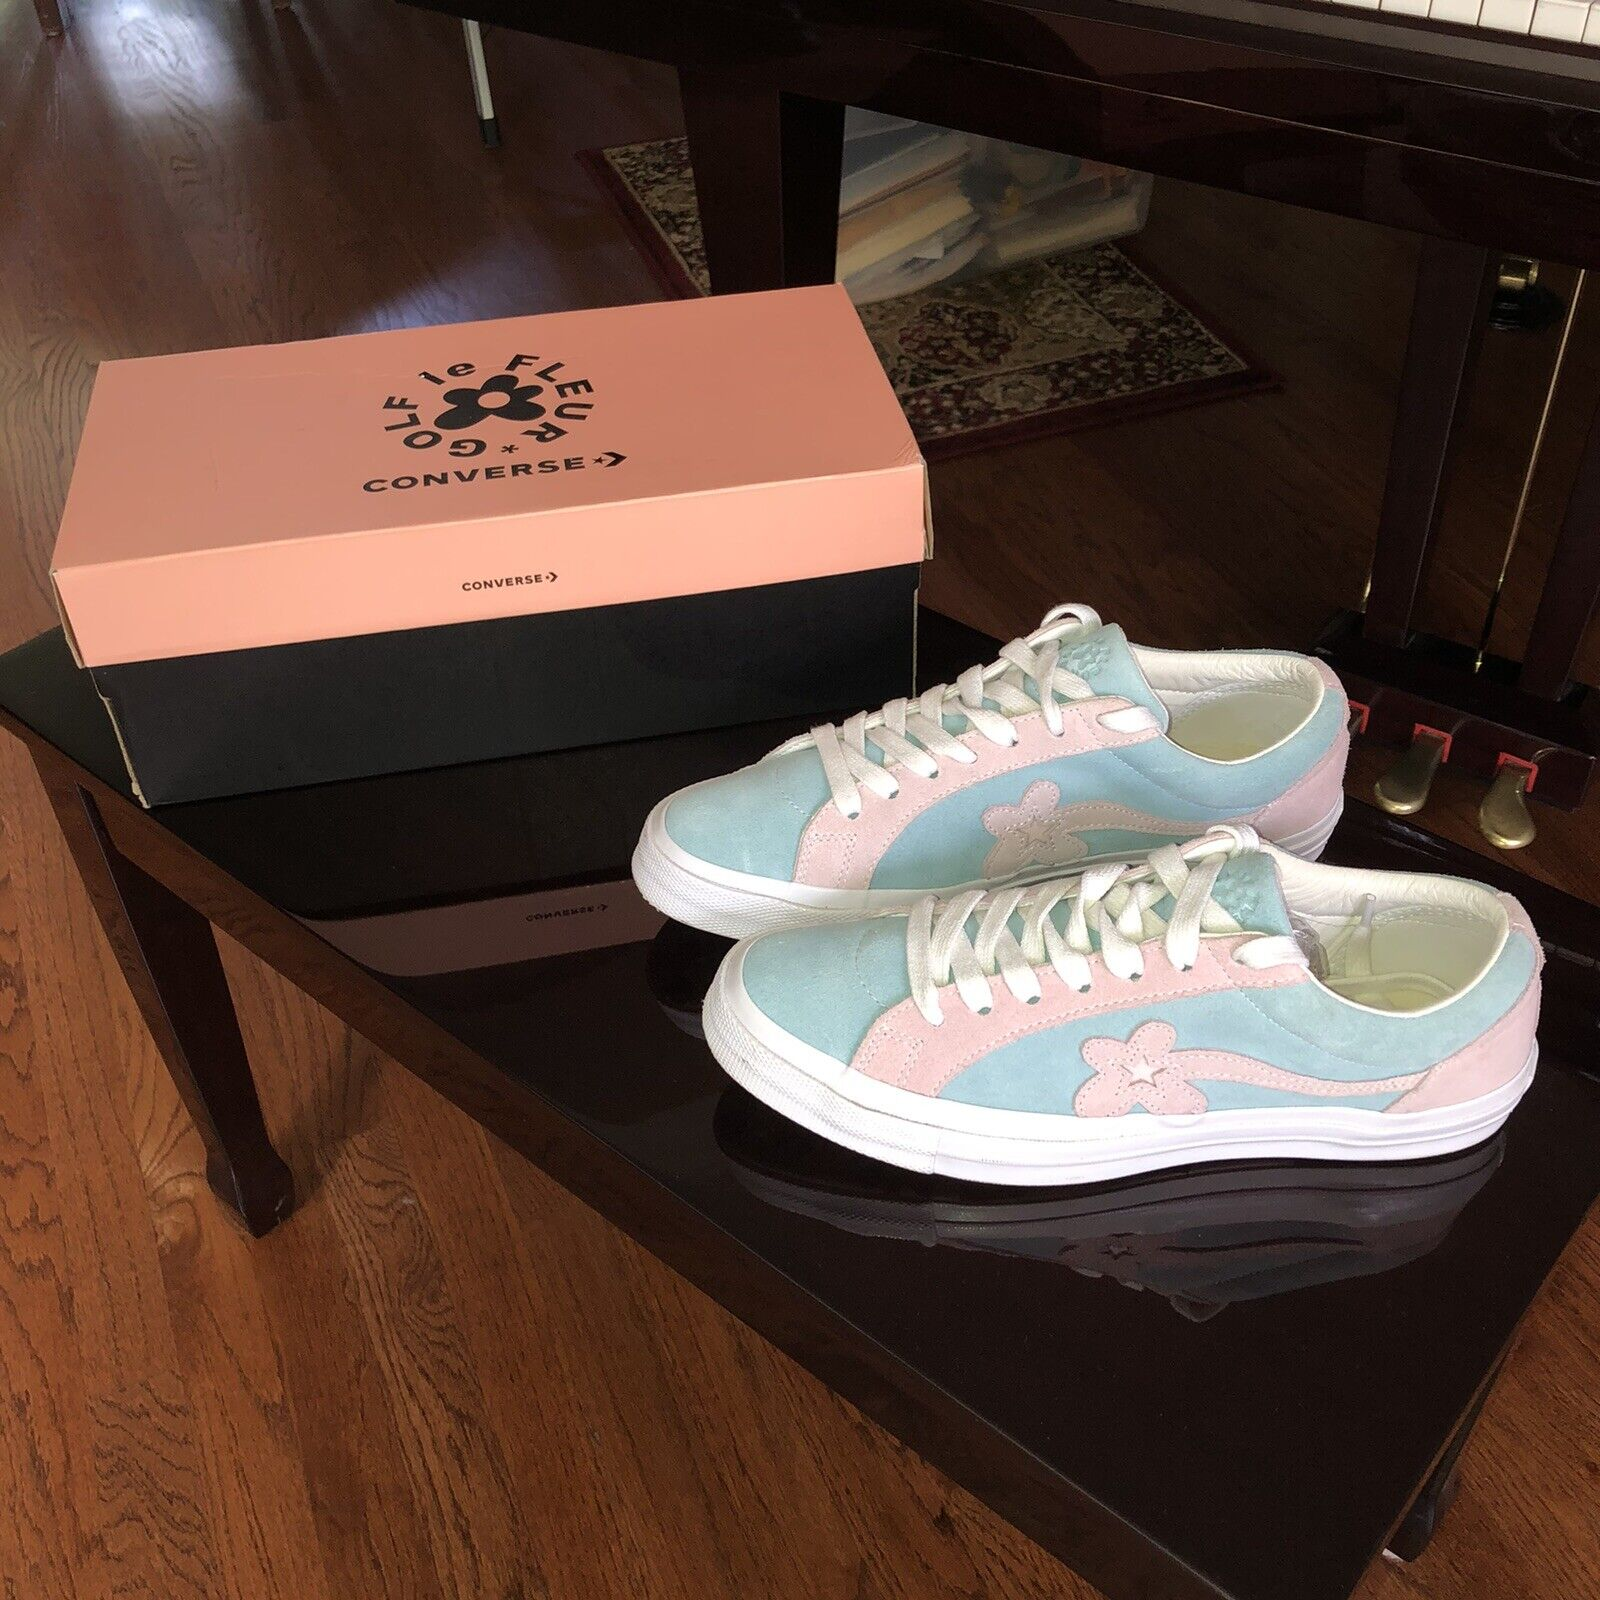 Golfwang X Converse Golf Le Fleur Shoes Tyler The Creator Of Odd Future Supreme For Sale Online Ebay